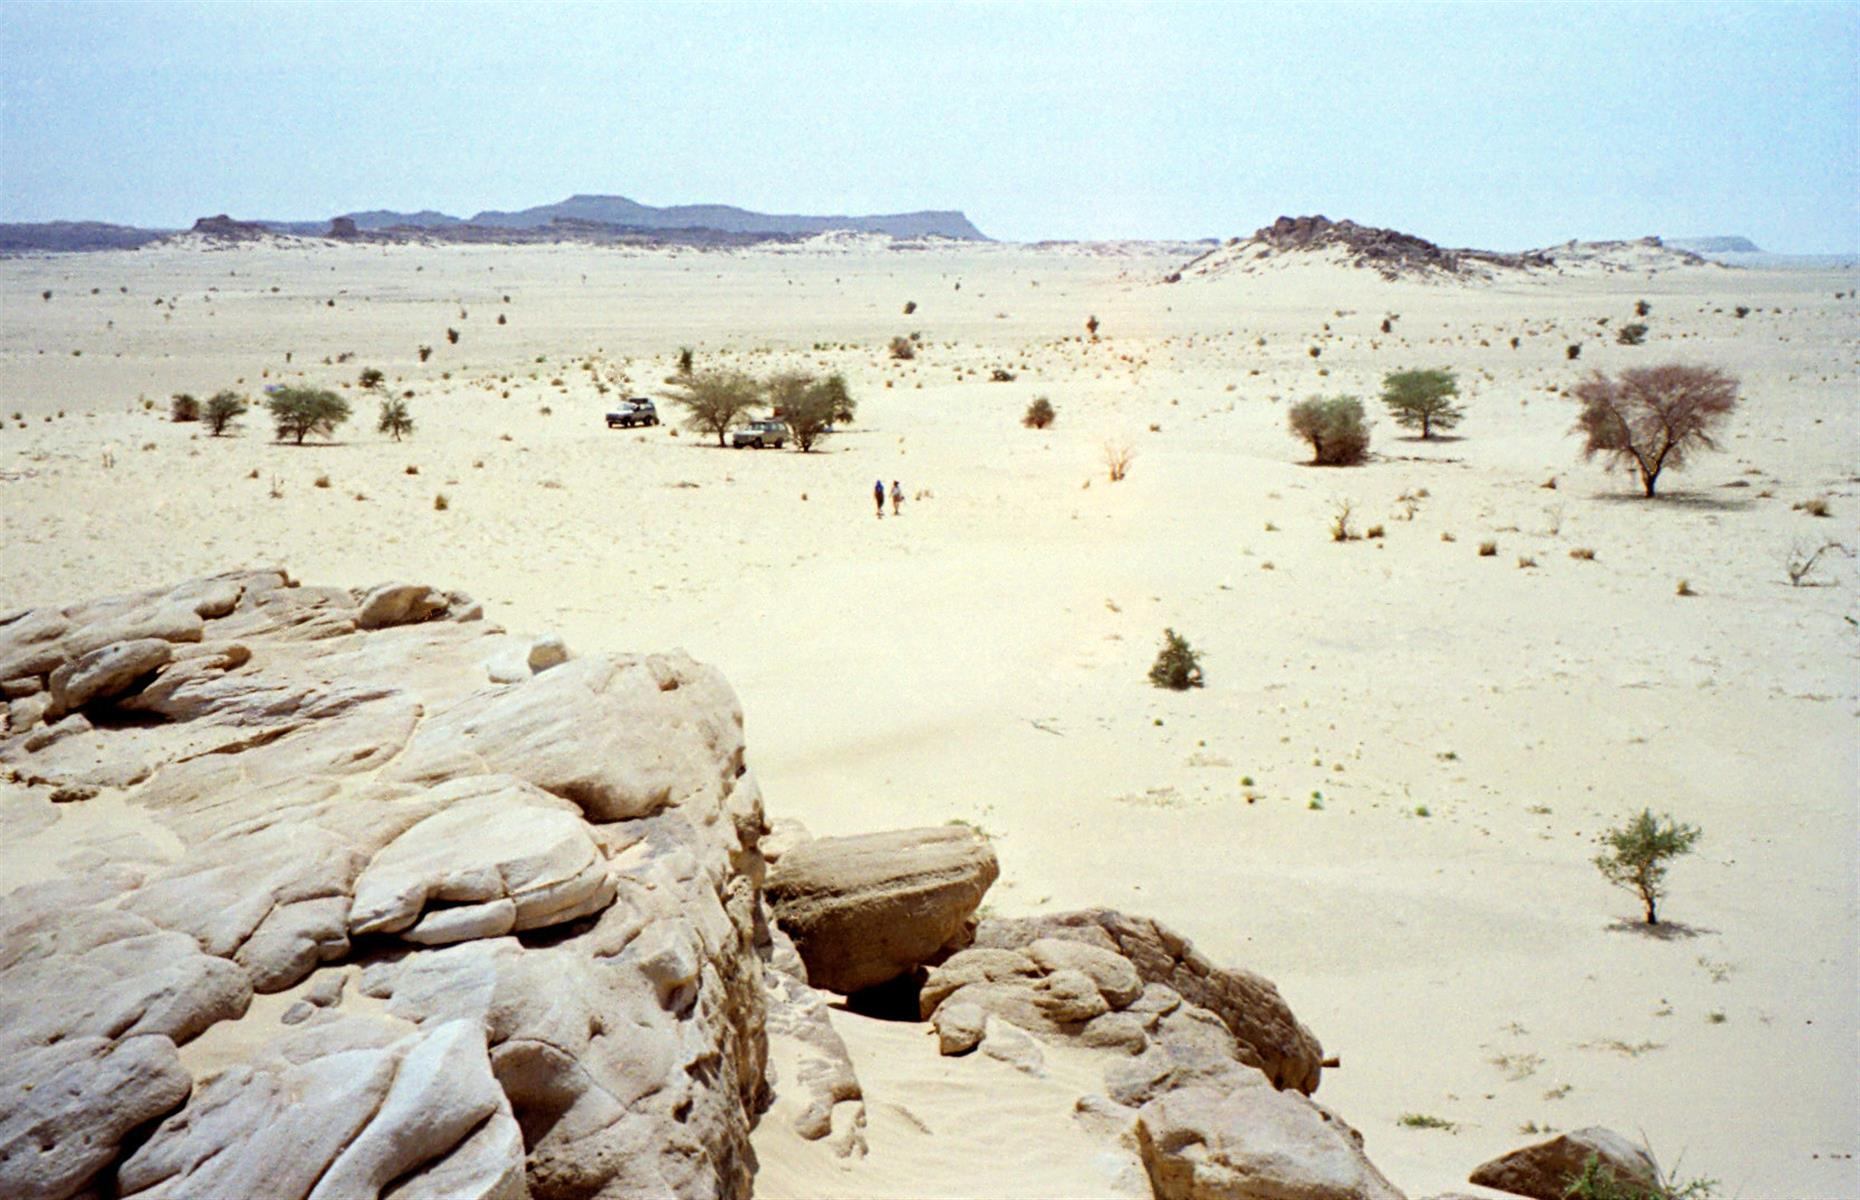 Slide 32 of 53: Ténéré within the Sahara Desert is a vast stretch of sand that extends from northeastern Niger into western Chad. It is the largest protected area in Africa at 7,736,000 hectares. The natural reserves are home to an array of plants and animals, including three threatened species of antelopes. The site was inscribed on the danger list in 1992 for a variety of reasons including political instability, poaching and illegal grazing.